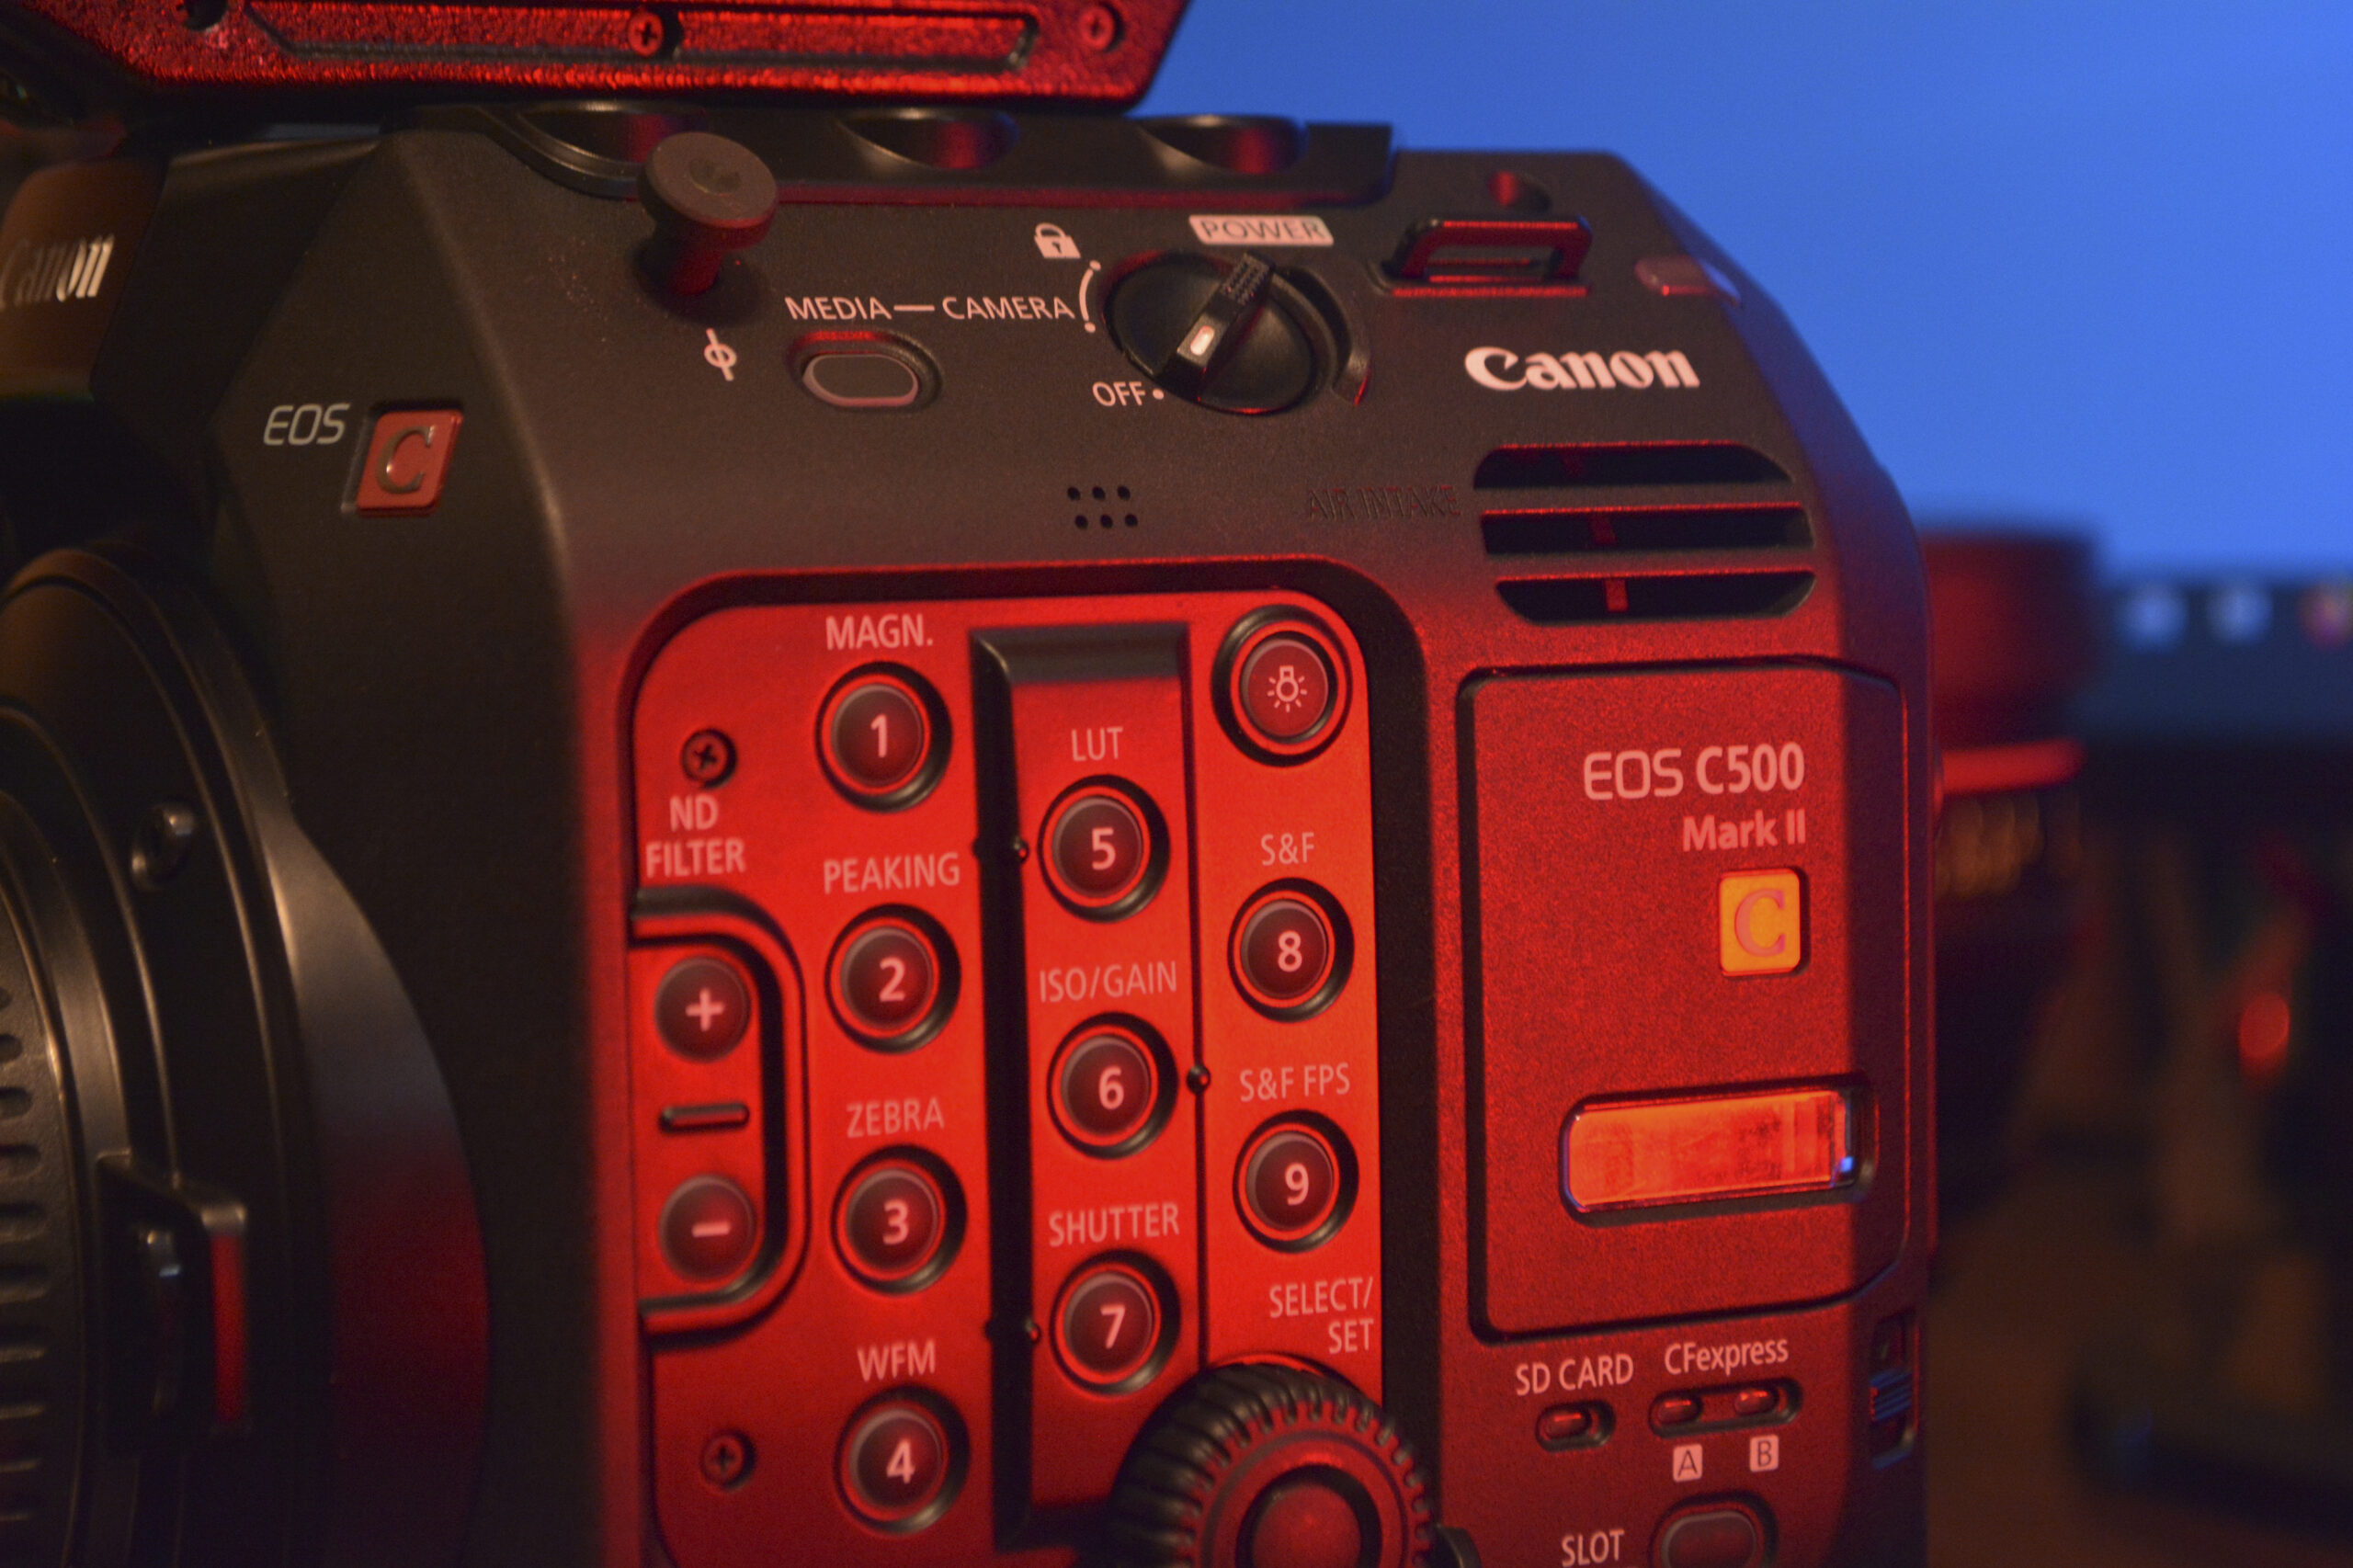 Canon EOS C500 Mark II - Side Close Up